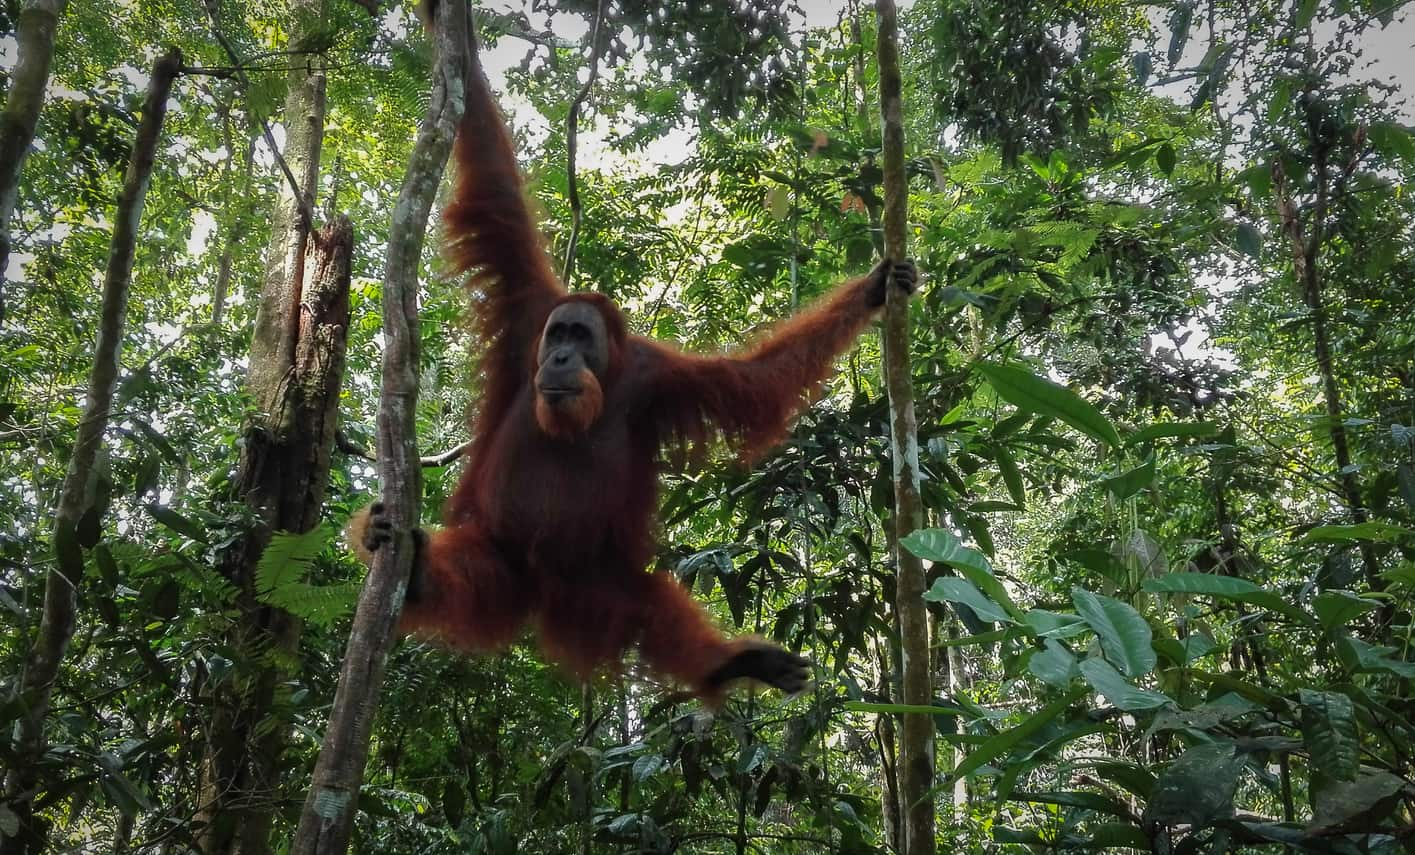 Male Orangutan released in the jungle of Bukit Lawang. Southeast asia trip